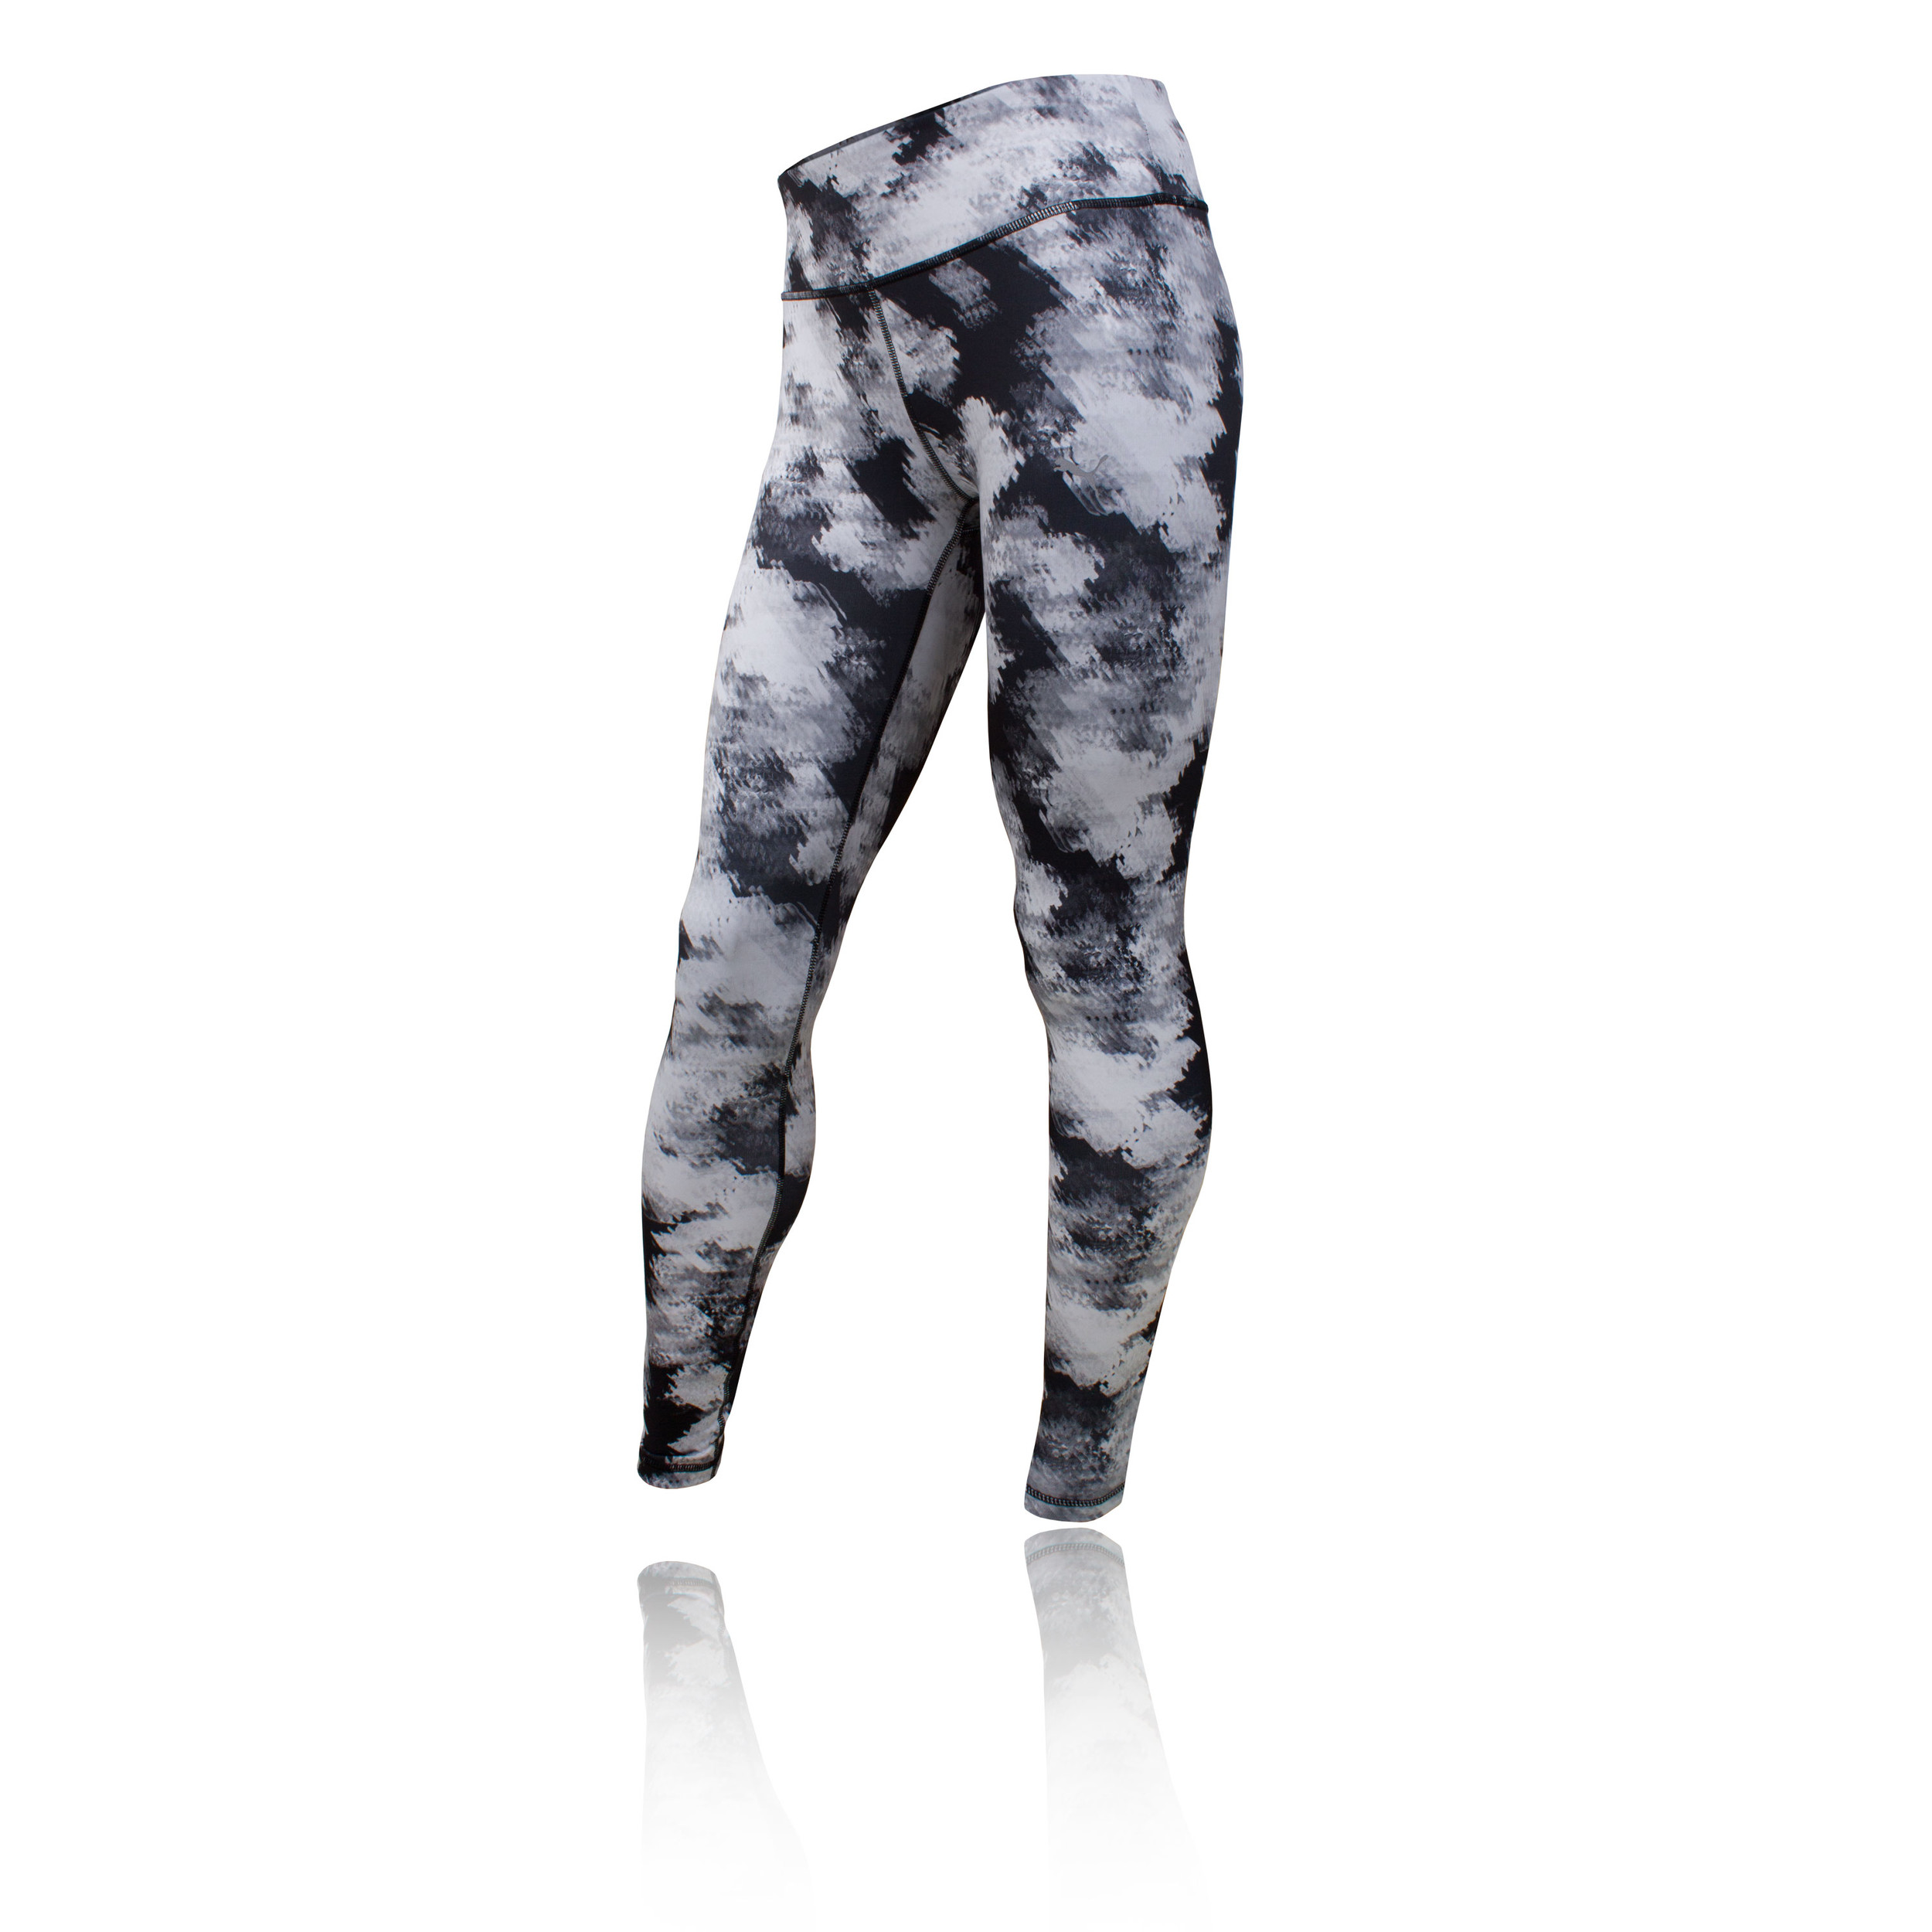 puma all eyes on me damen laufhose jogginghose hose sport tight mehrfarbig ebay. Black Bedroom Furniture Sets. Home Design Ideas